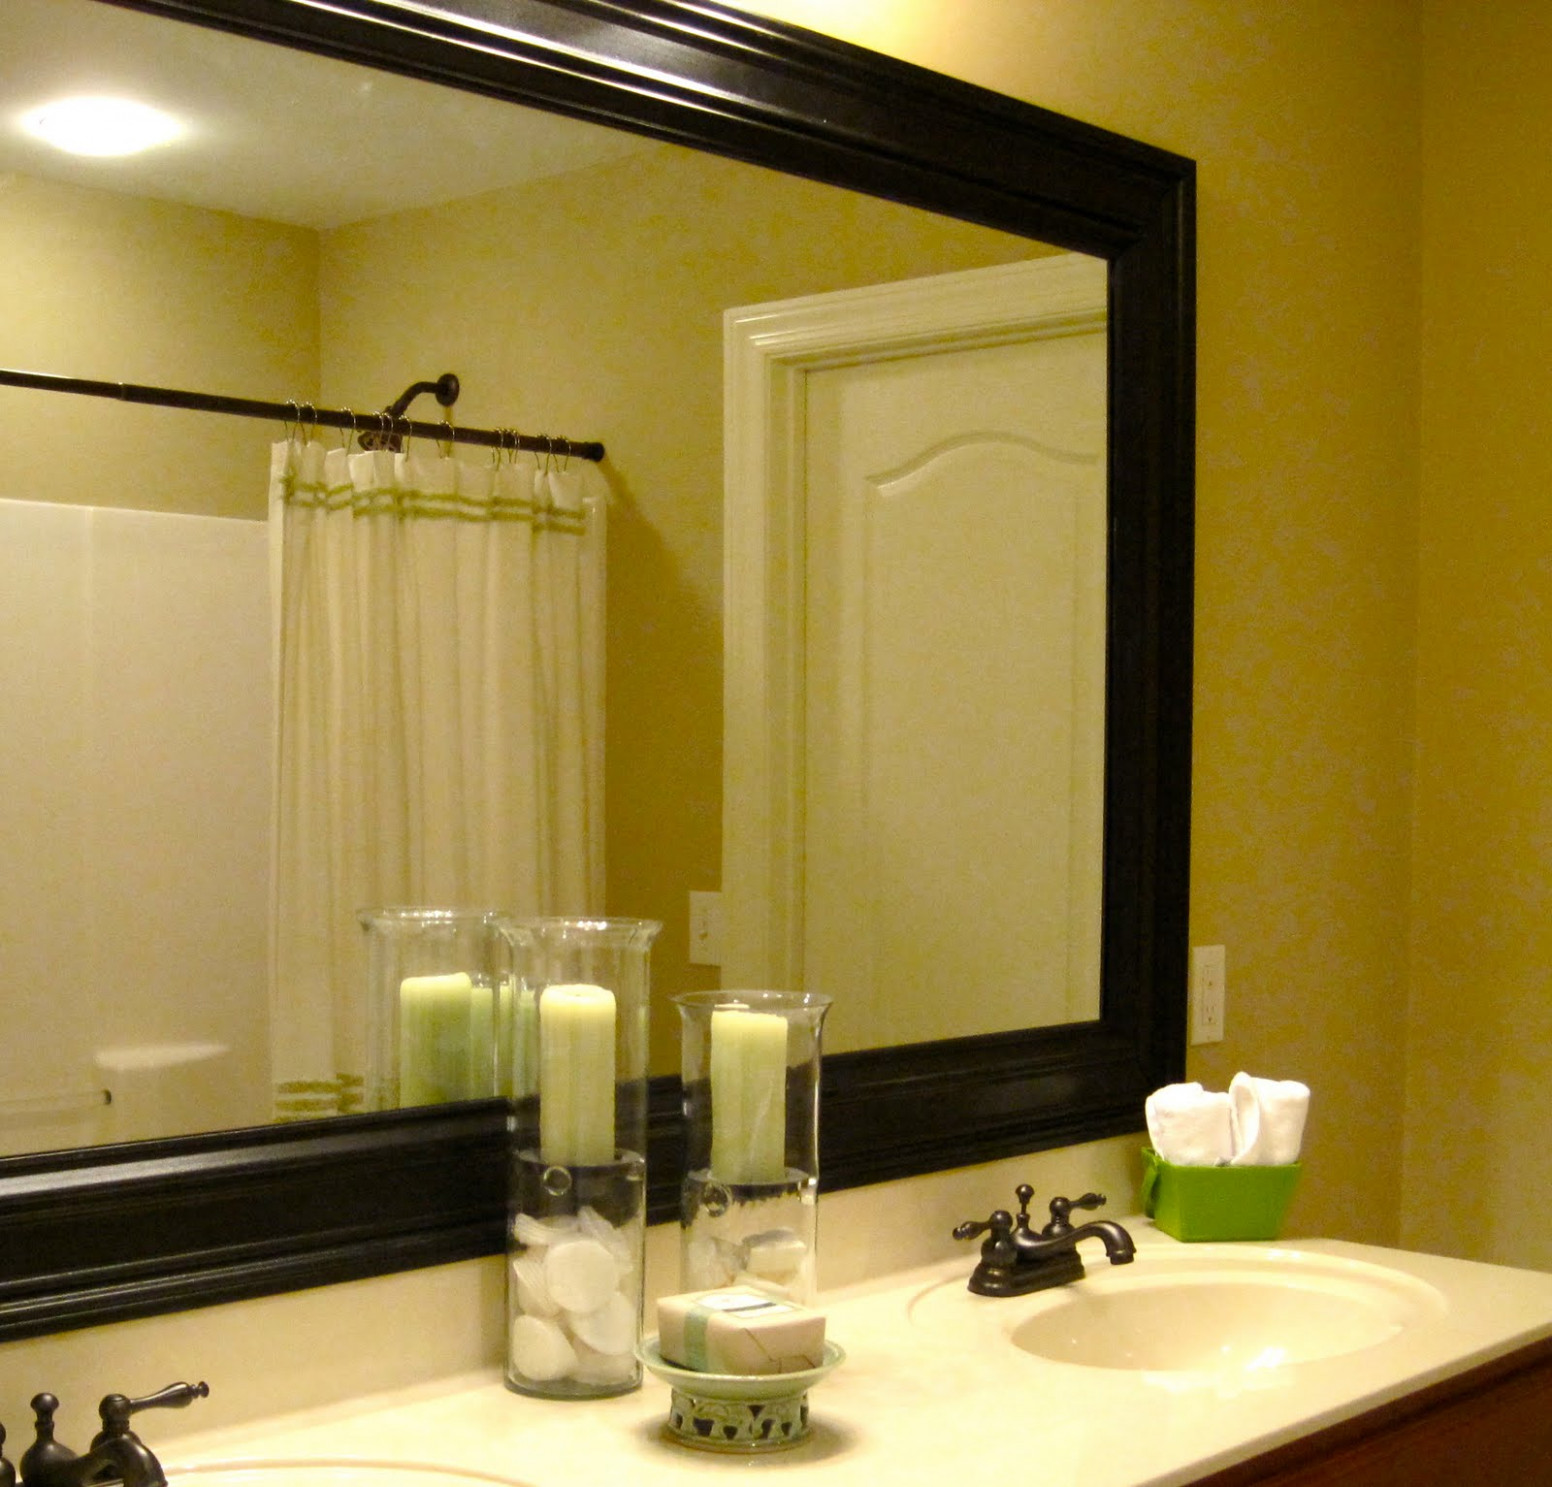 Adorable Diy Bathroom Mirror Frame — The New Way Home Decor : Framed ...